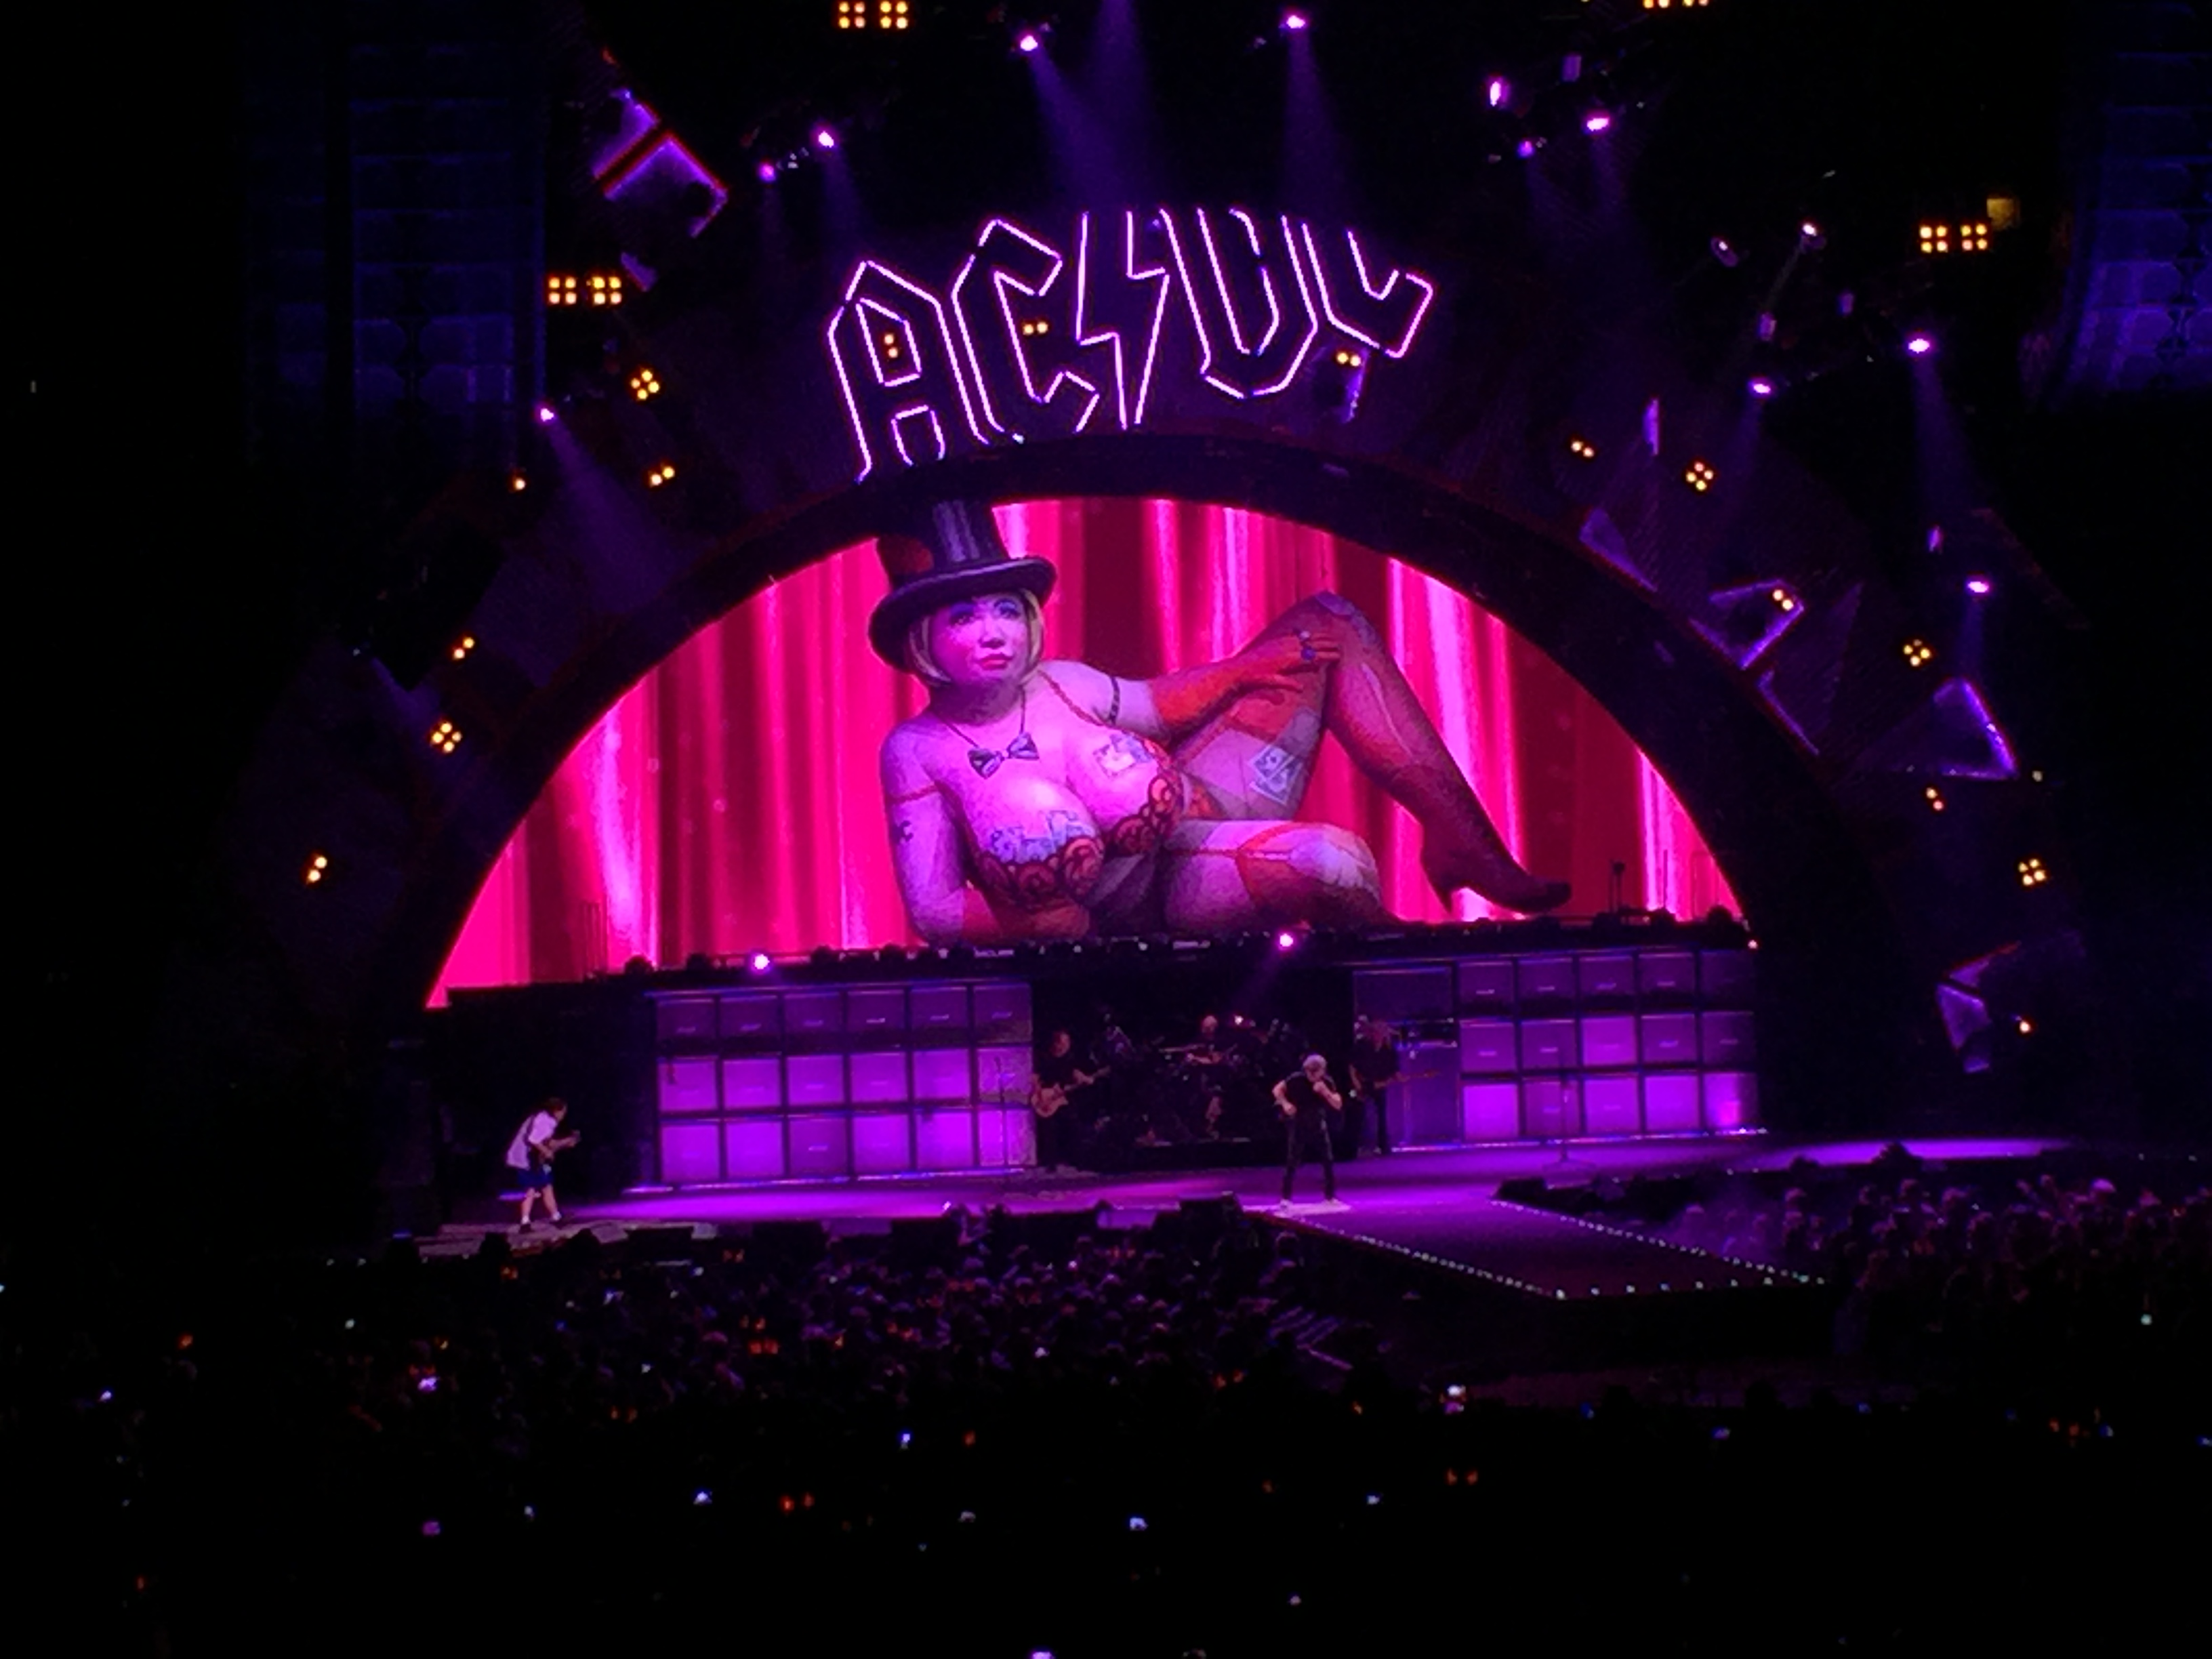 Review / Setlist / Video | AC/DC @ United Center 2/17/16